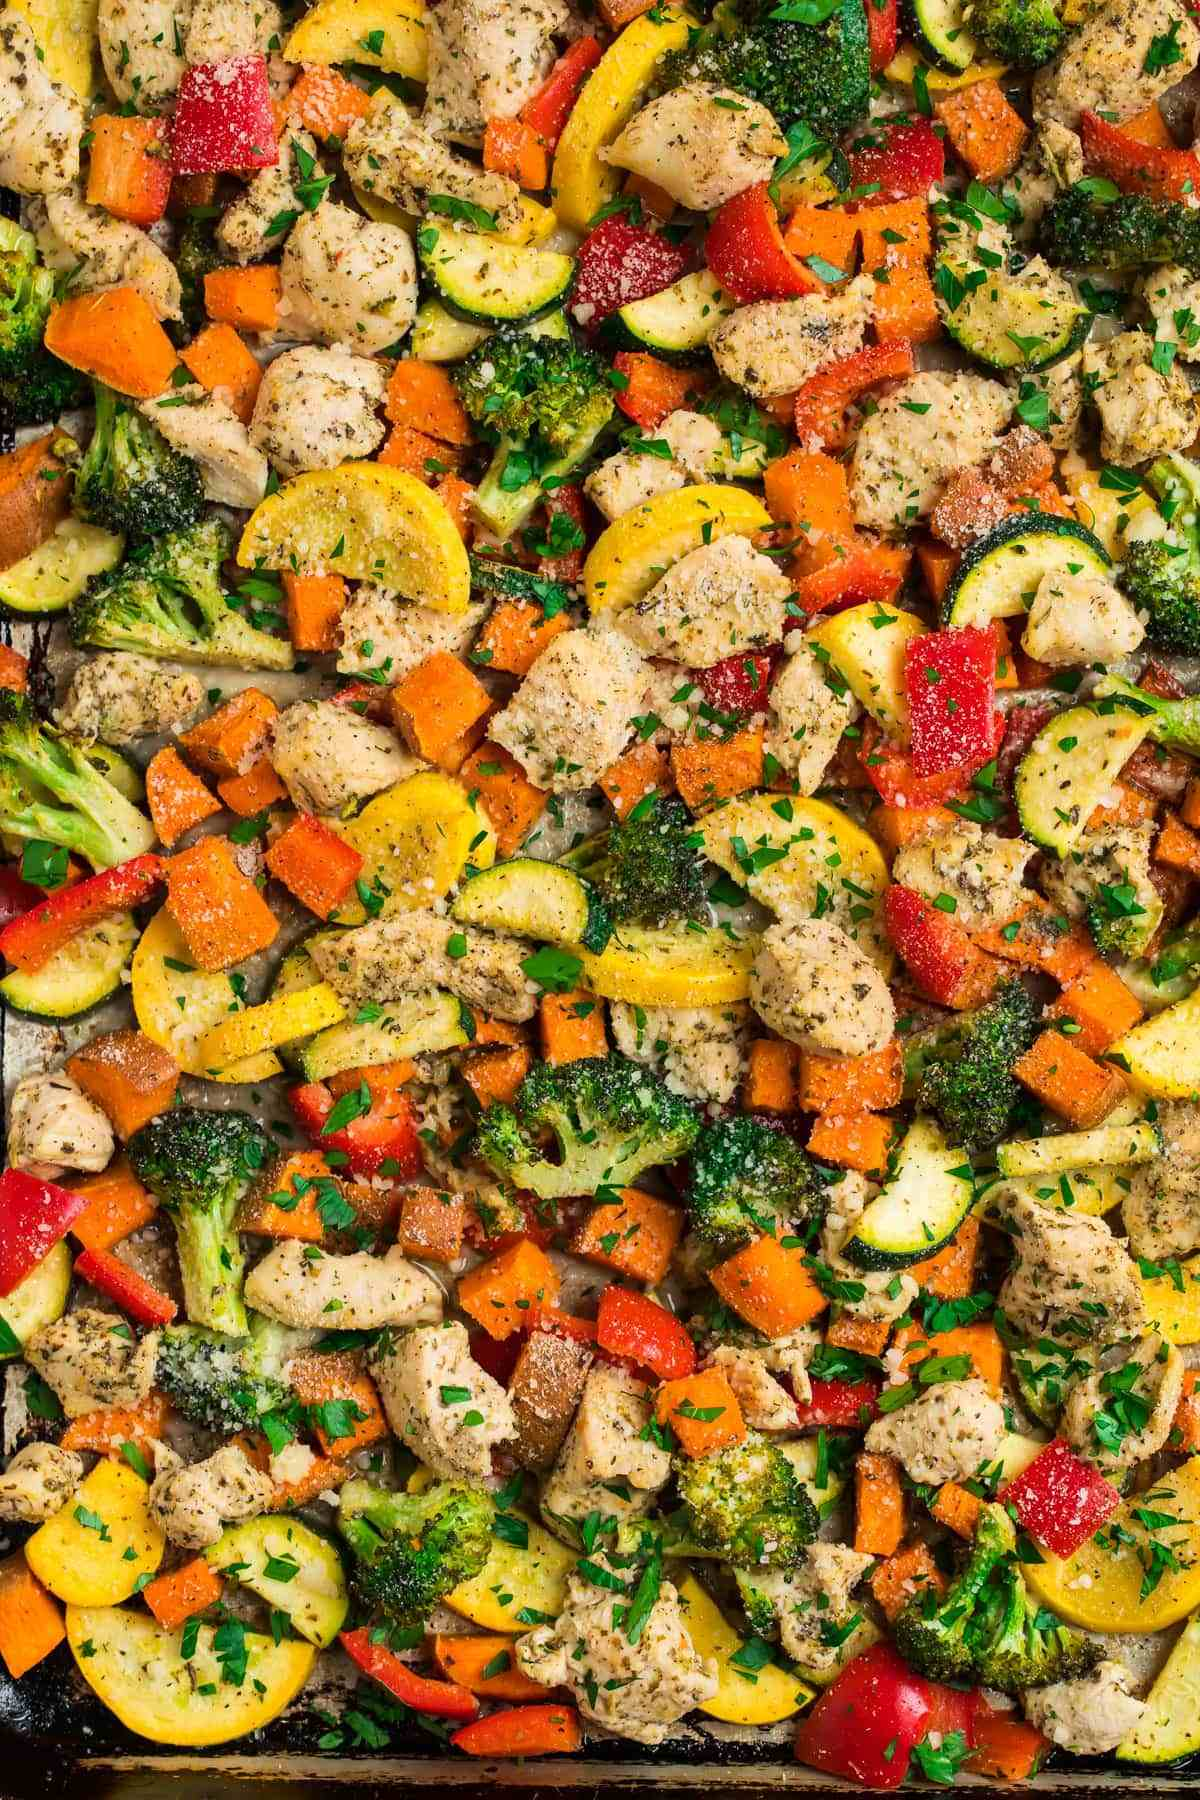 Sheet pan chicken and veggies are the perfect pantry meal using ingredients you probably already have on hand